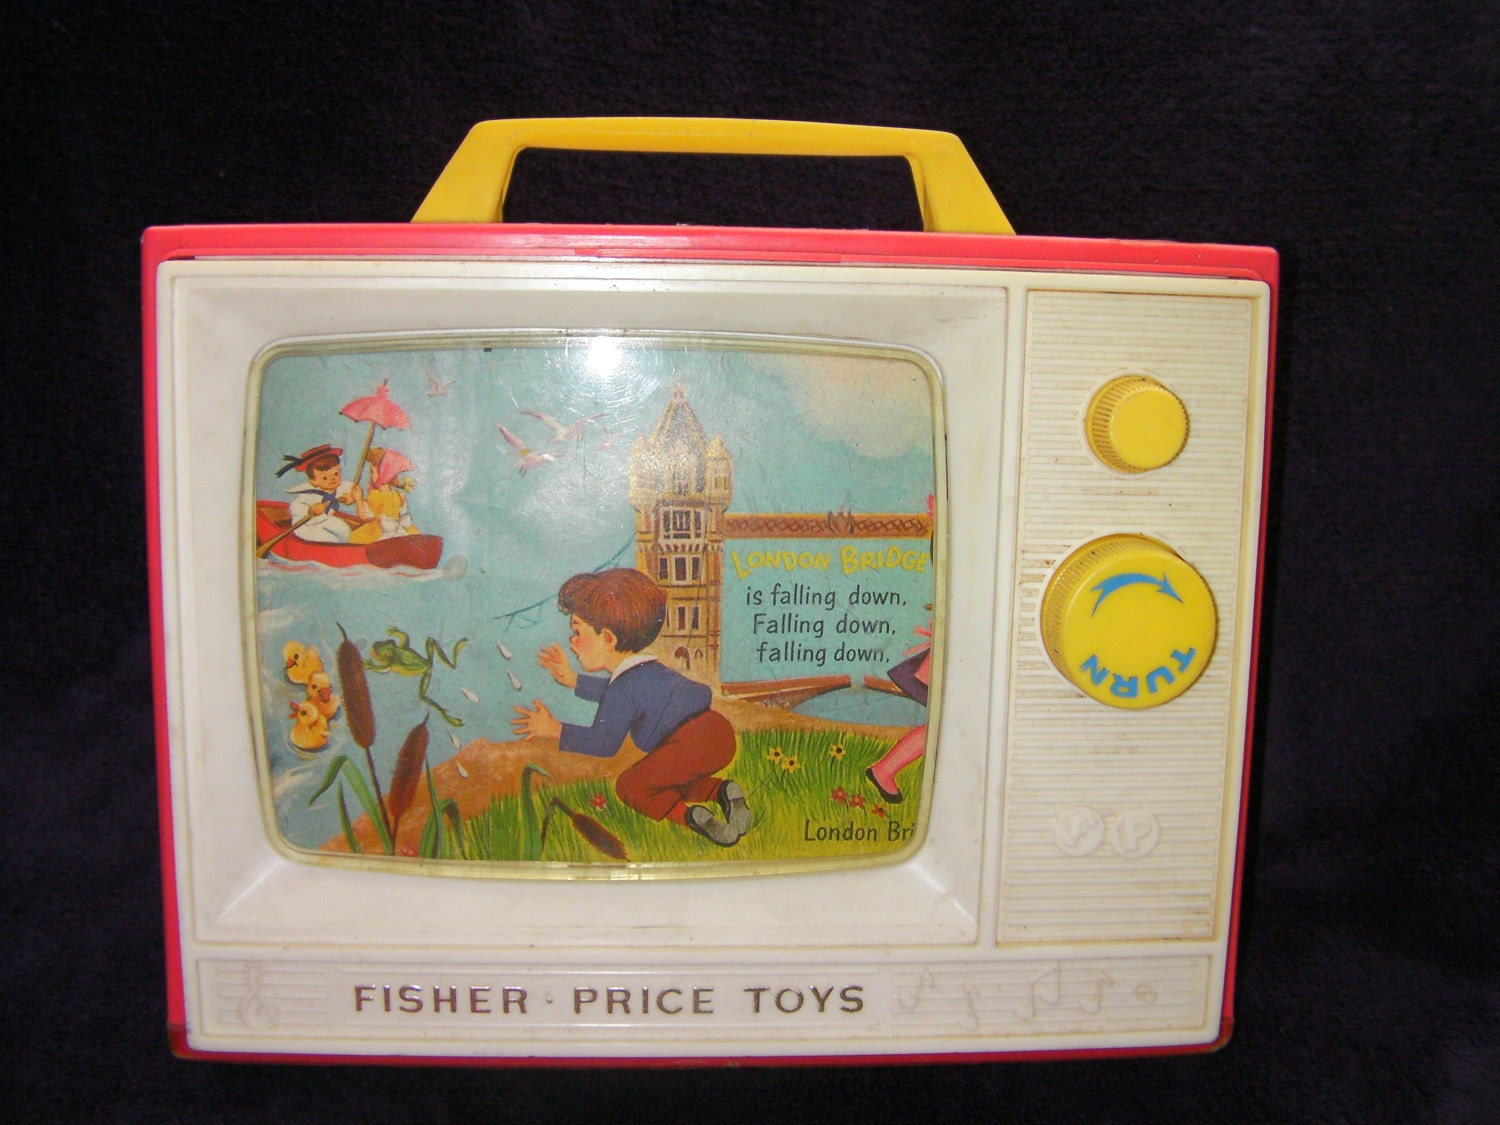 Vintage Retro Fisher Price Toys London Bridge is Falling Down TV Windup Toy TV. Musical Toy 1960s